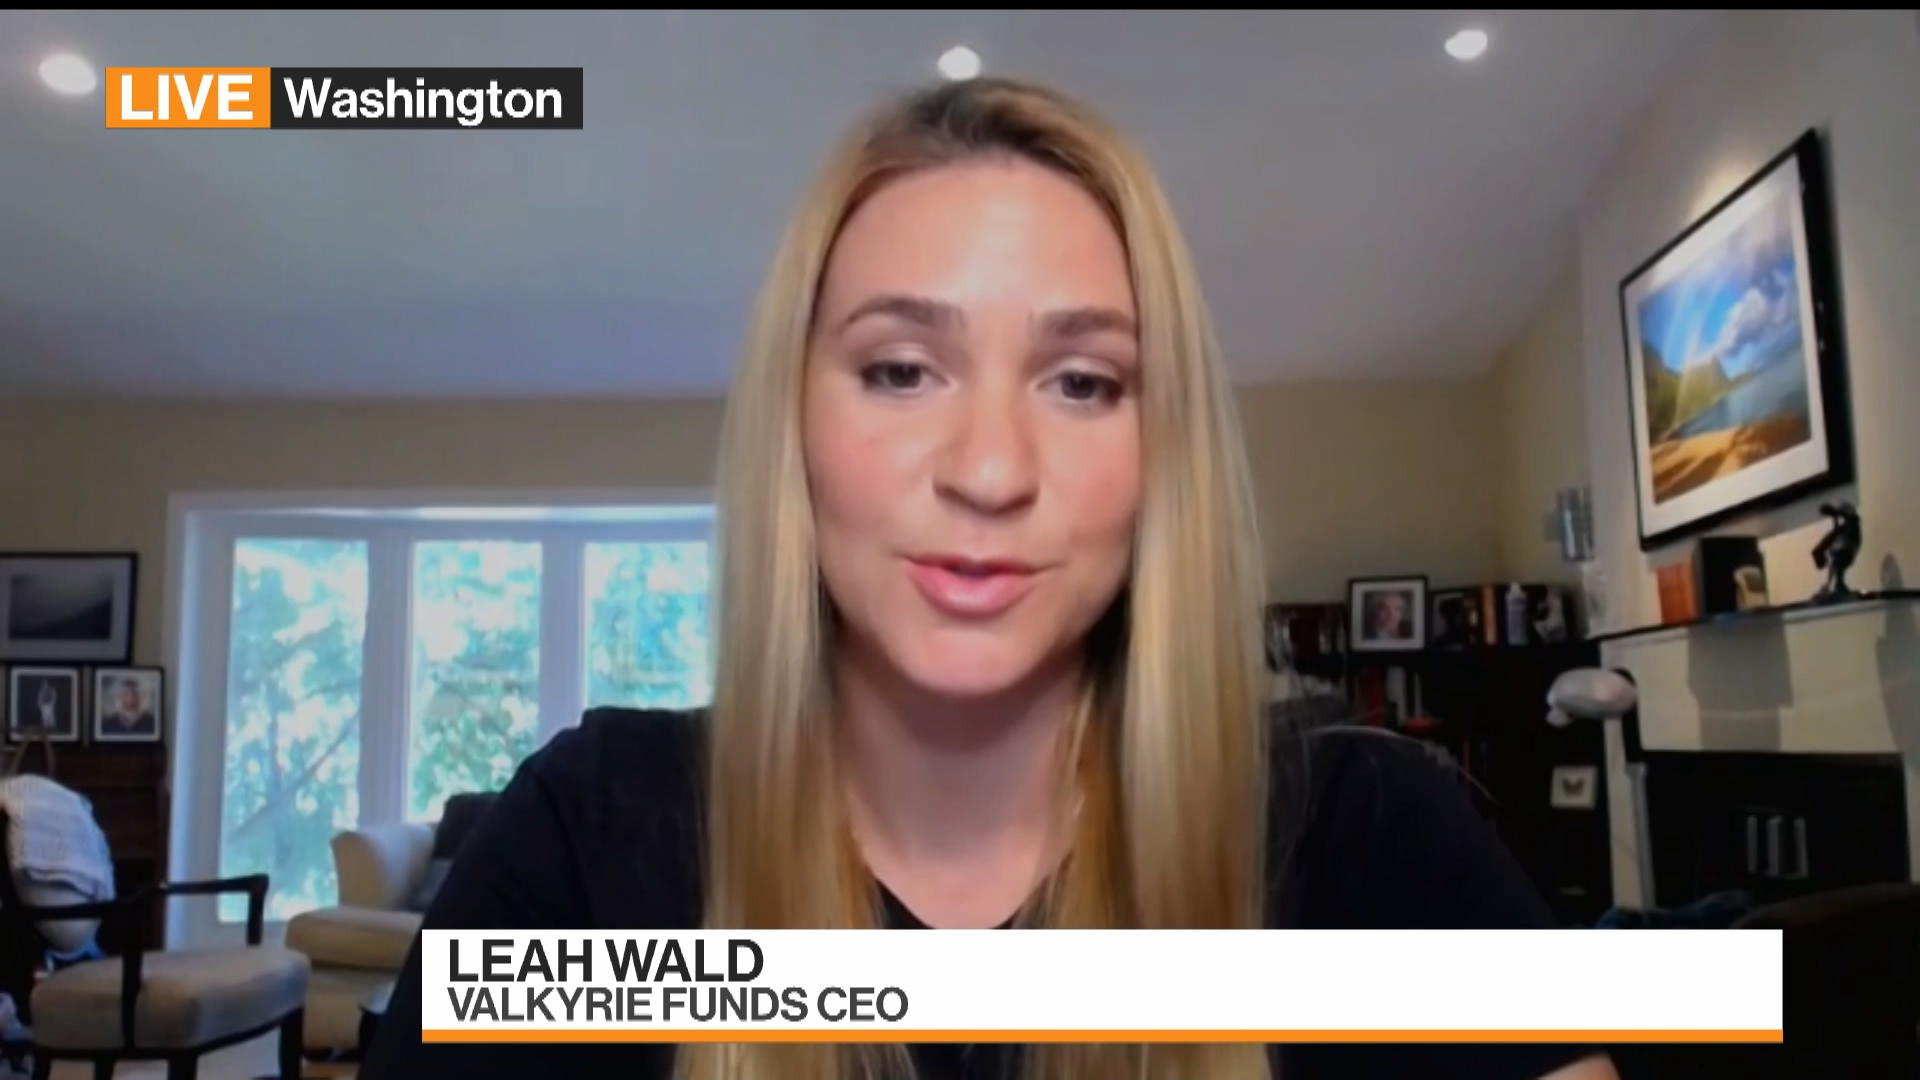 Valkyrie Funds CEO Leah Wald on choosing Nasdaq Exchange